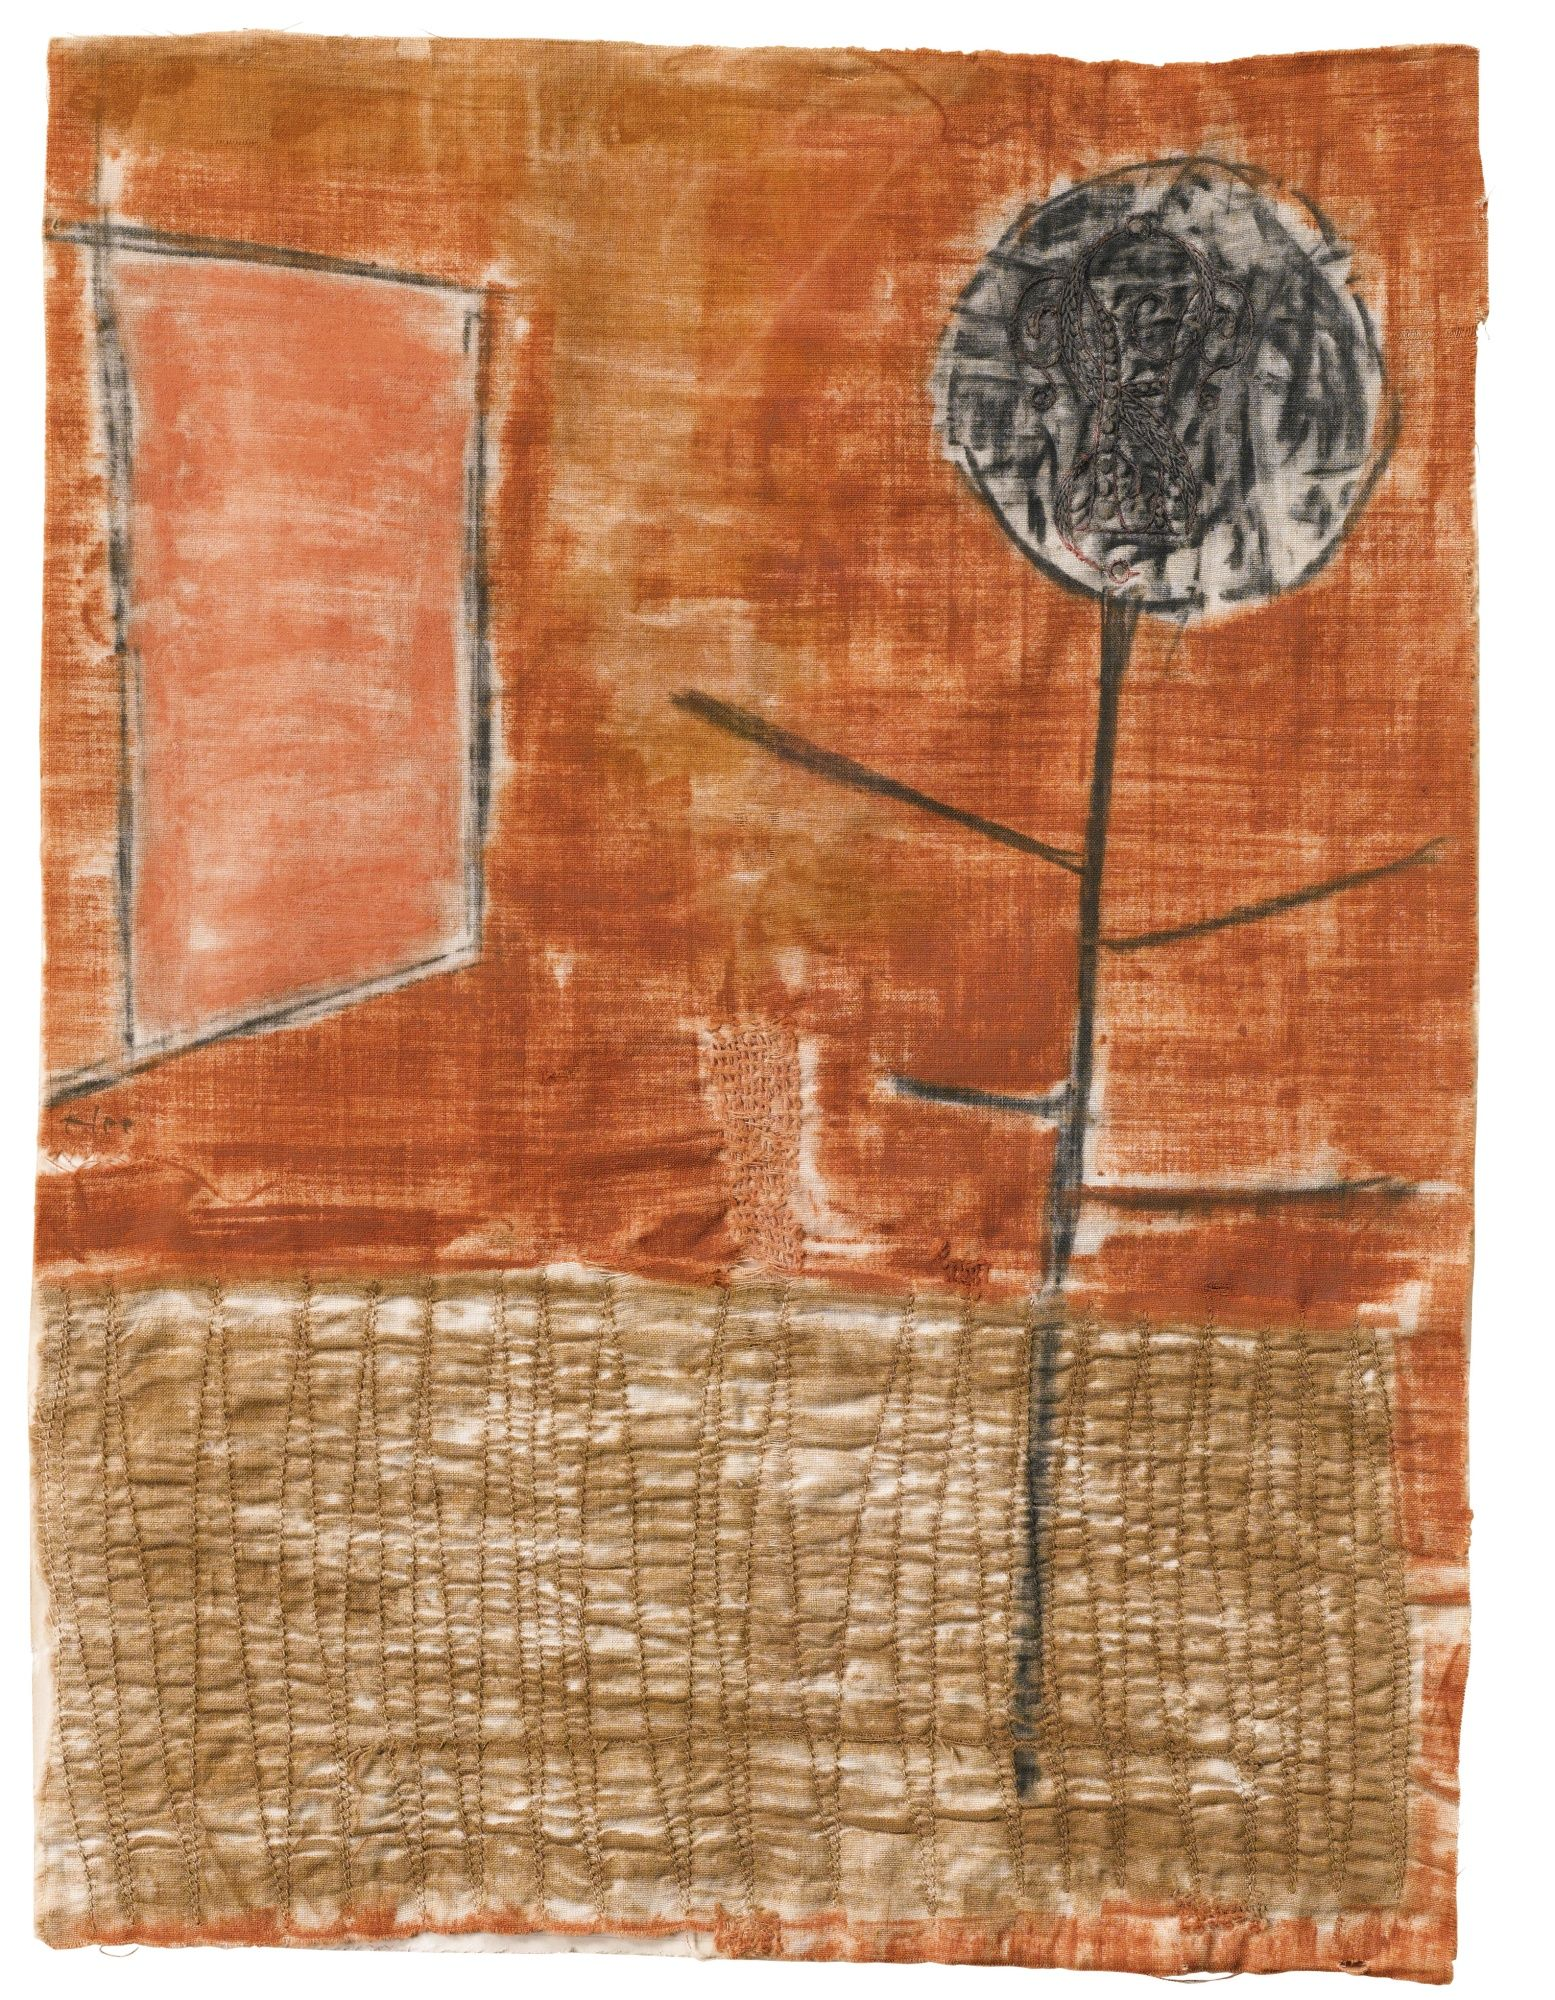 Paul Klee SPÄTHERBSTLICHE PFLANZE (PLANT IN LATE AUTUMN) signed Klee (centre left); dated 1934 K 15 and titled on a piece of the remaining artist's mount pastel on embroidered cloth 30 by 22.5cm., 11 3/4 by 8 7/8 in. Executed in 1934-35. Estimate 109,858 - 141,246USD LOT SOLD. 117,705 USD